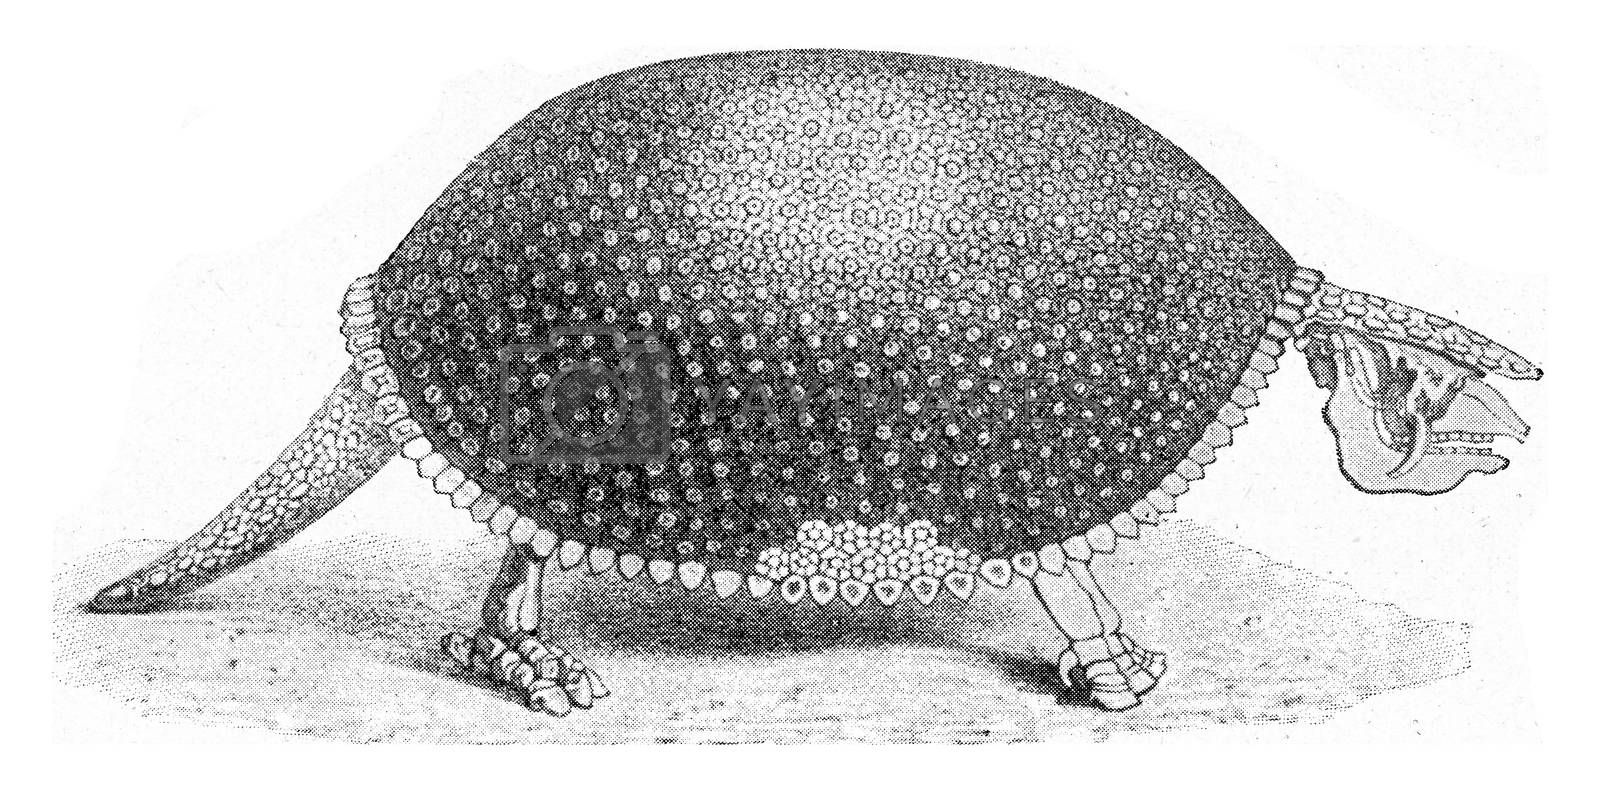 Royalty free image of Glyptodon, a fossil armadillo, vintage engraving. by Morphart